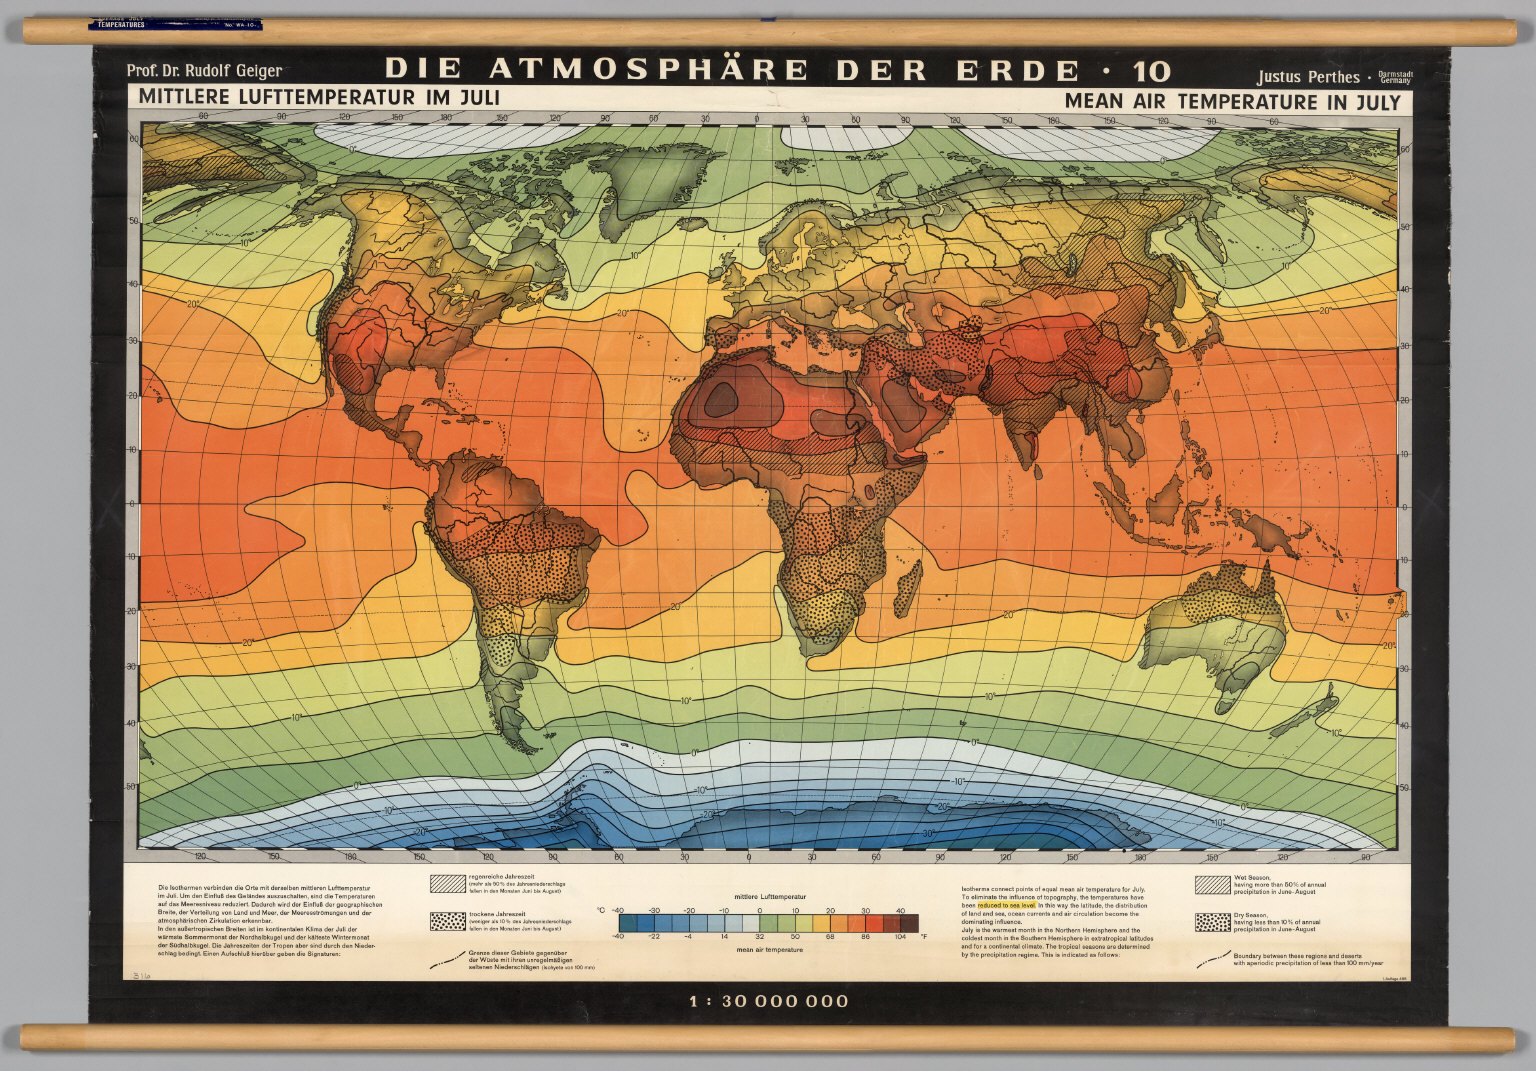 World Atmosphere Average July Temperature David Rumsey